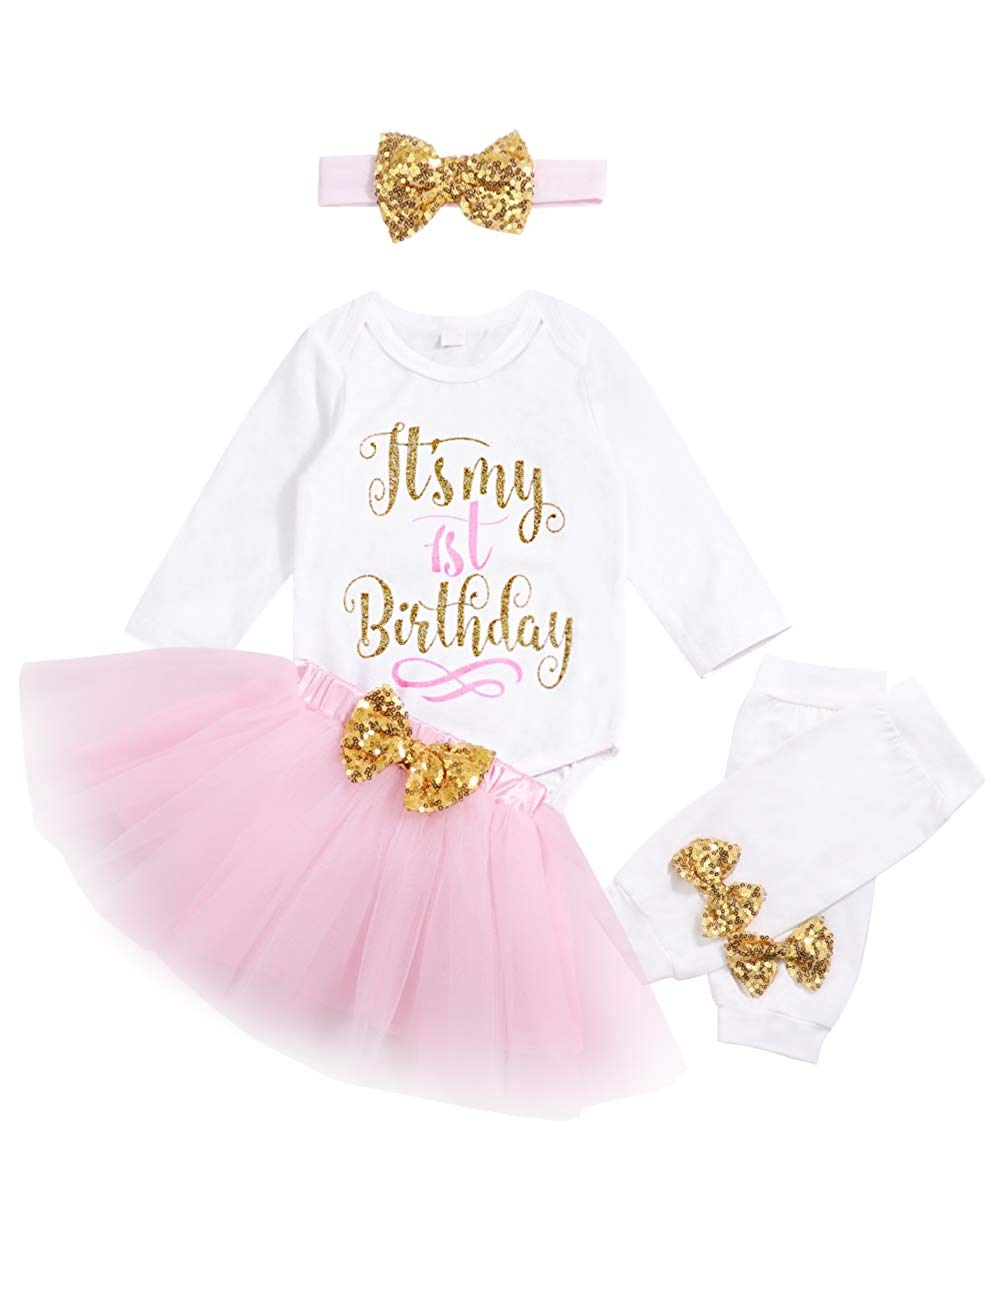 1st Birthday Girl Outfit Mint and Gold Personalized Baby Girl First Birthday Outfit Mint Tutu One Year Old Outfit Girl